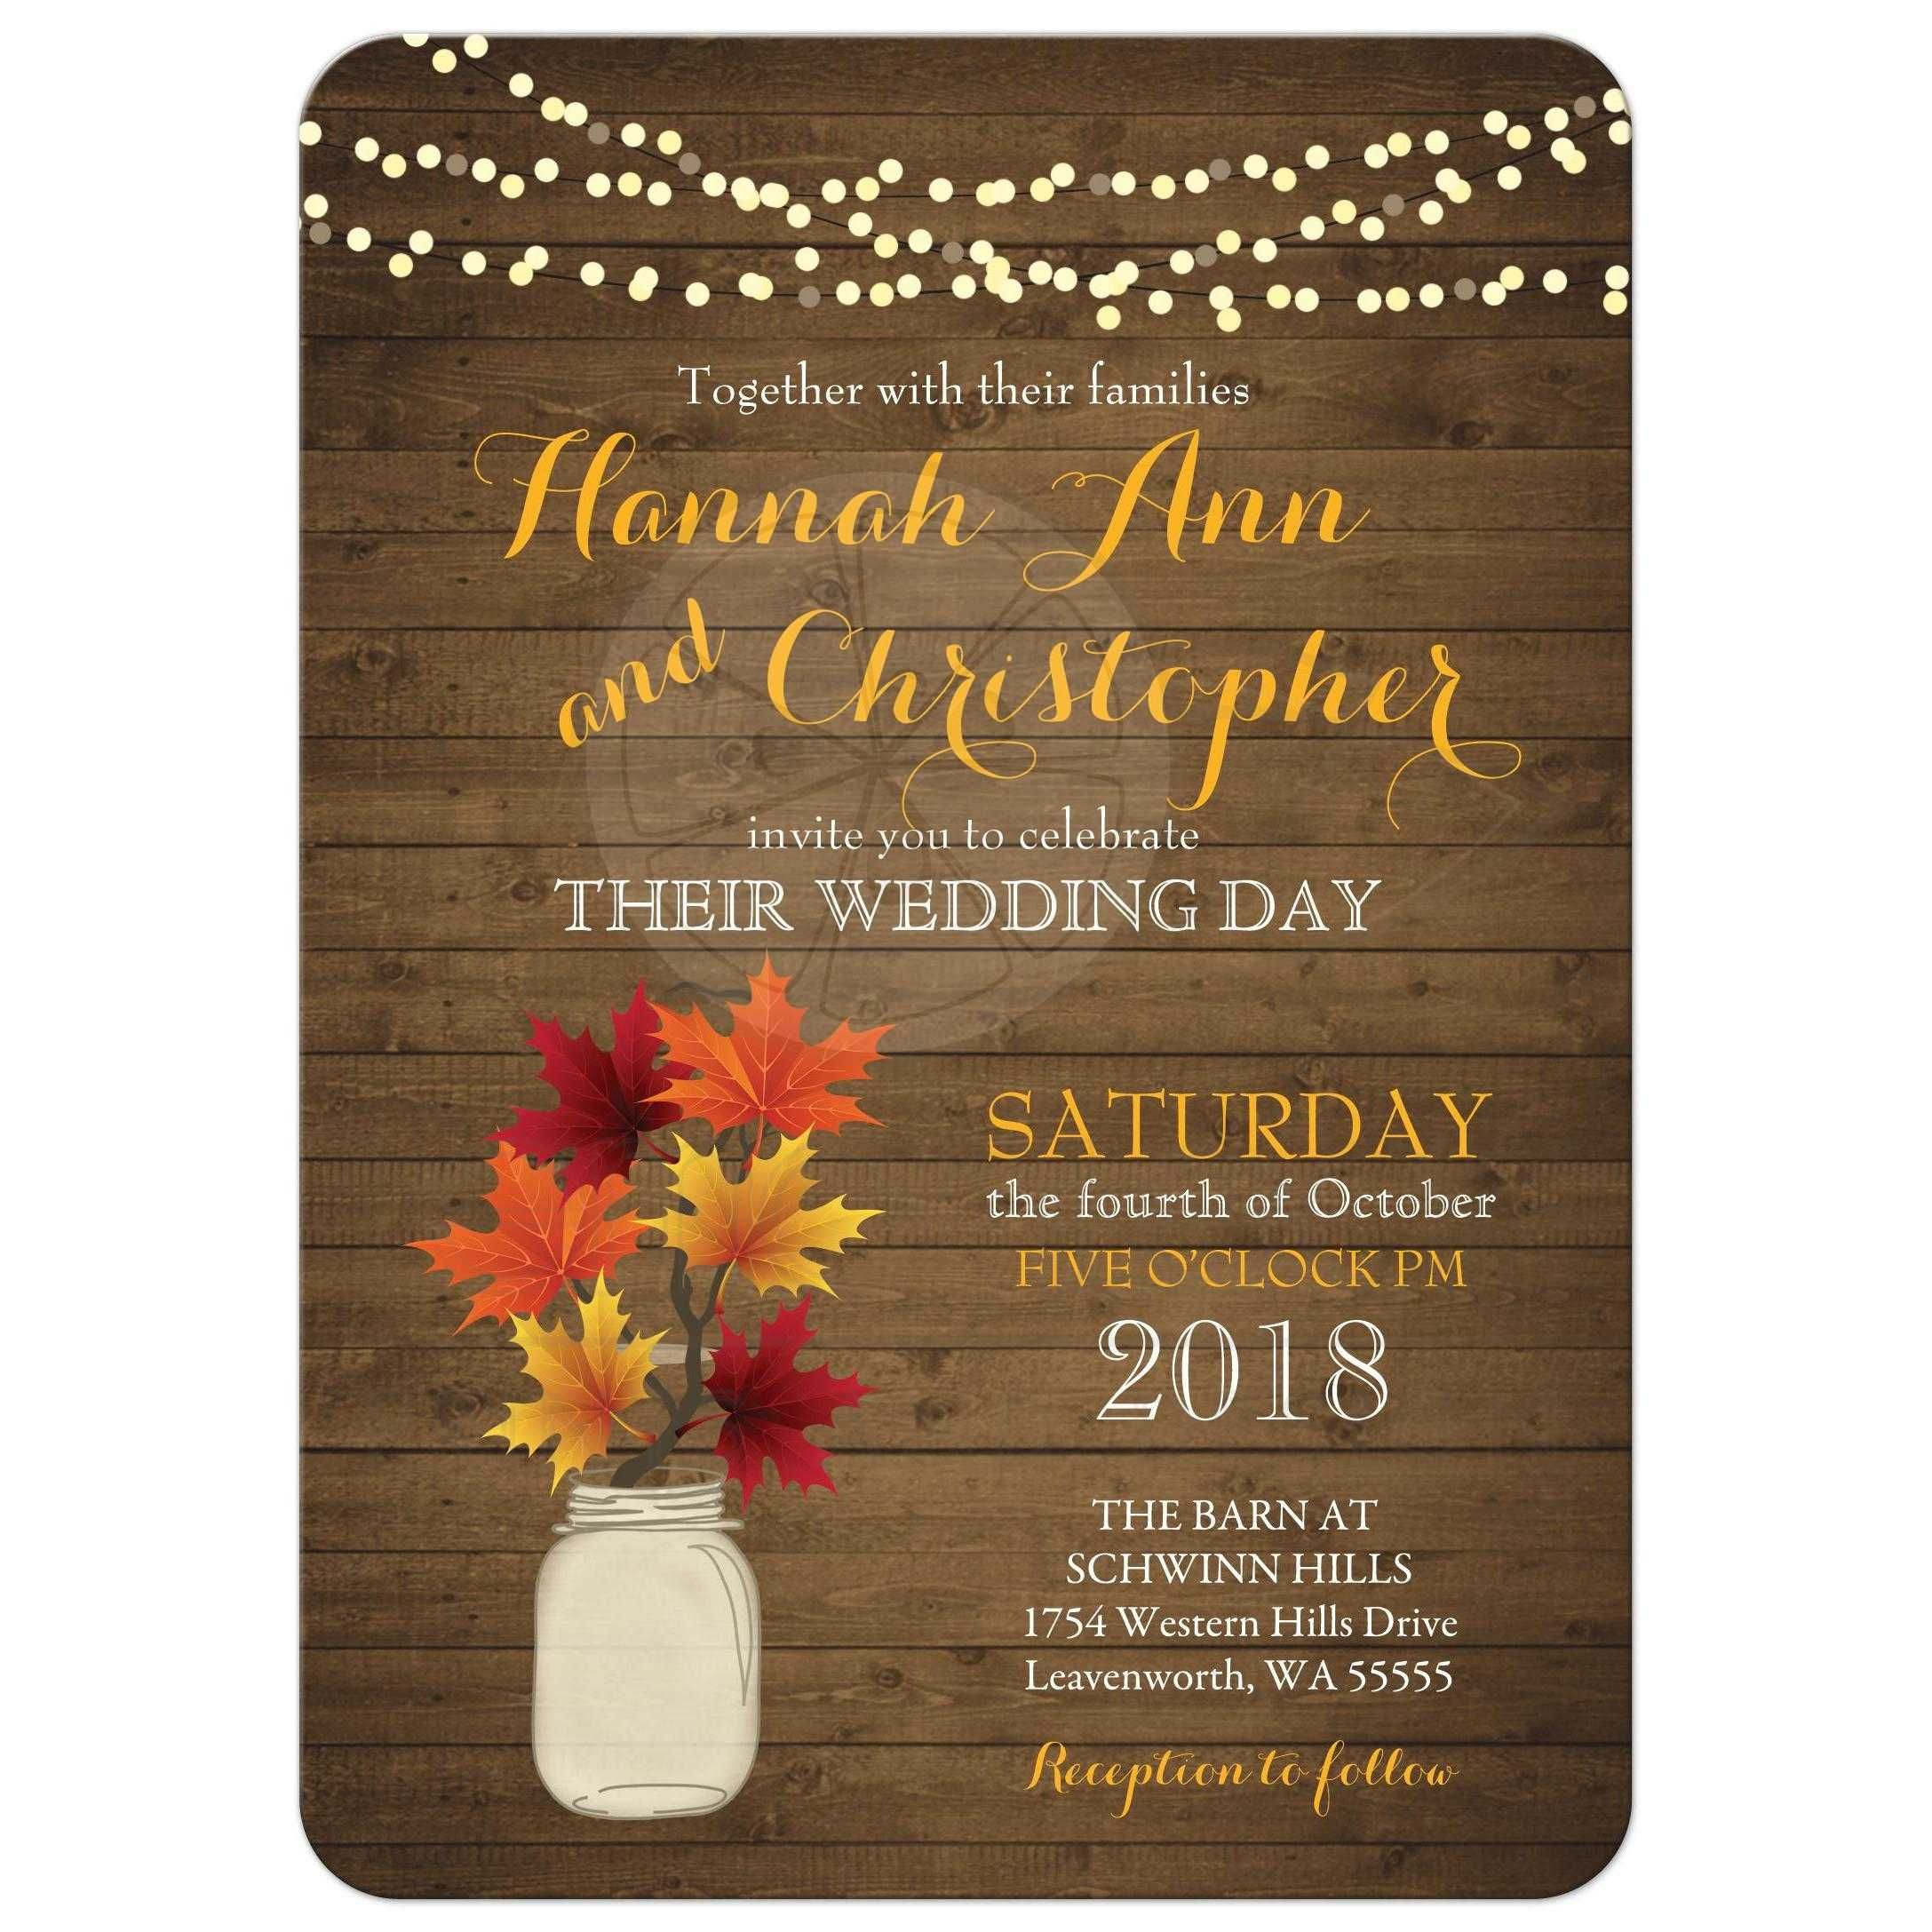 Rustic Country Fall Wedding Invitations Featuring A Rustic Mason